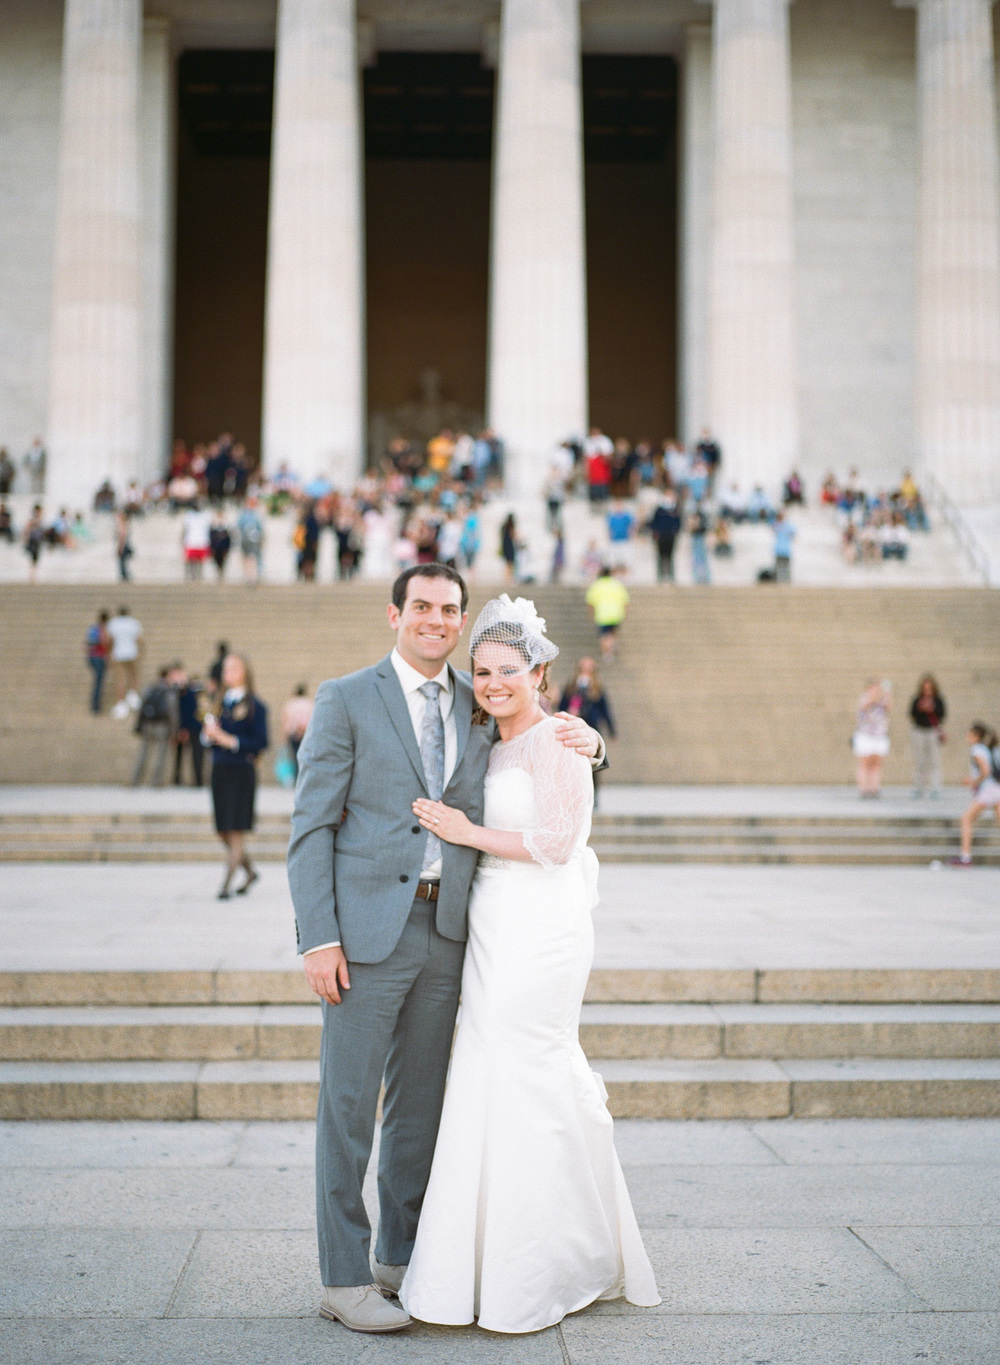 291-lincoln-memorial-wedding-photography.jpg